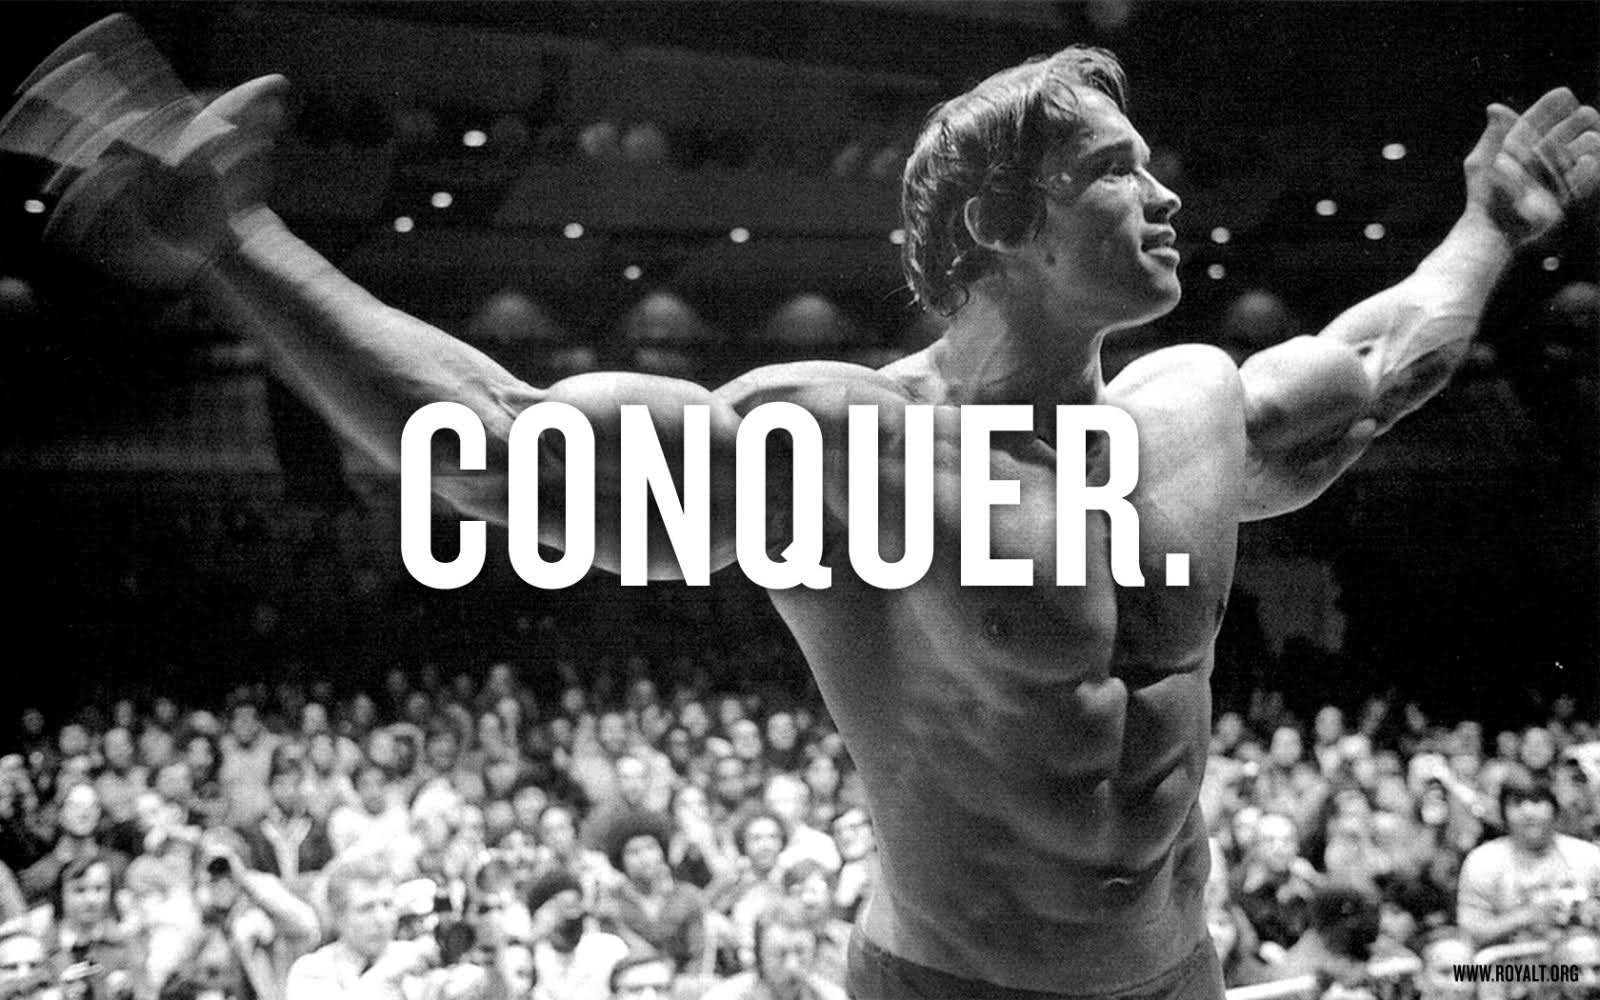 Delightful Arnold Schwarzenegger Bodybuilding Wallpaper Wallpaper Strong Comic  Bodybuilding Quote Wallpaper 1600x1000